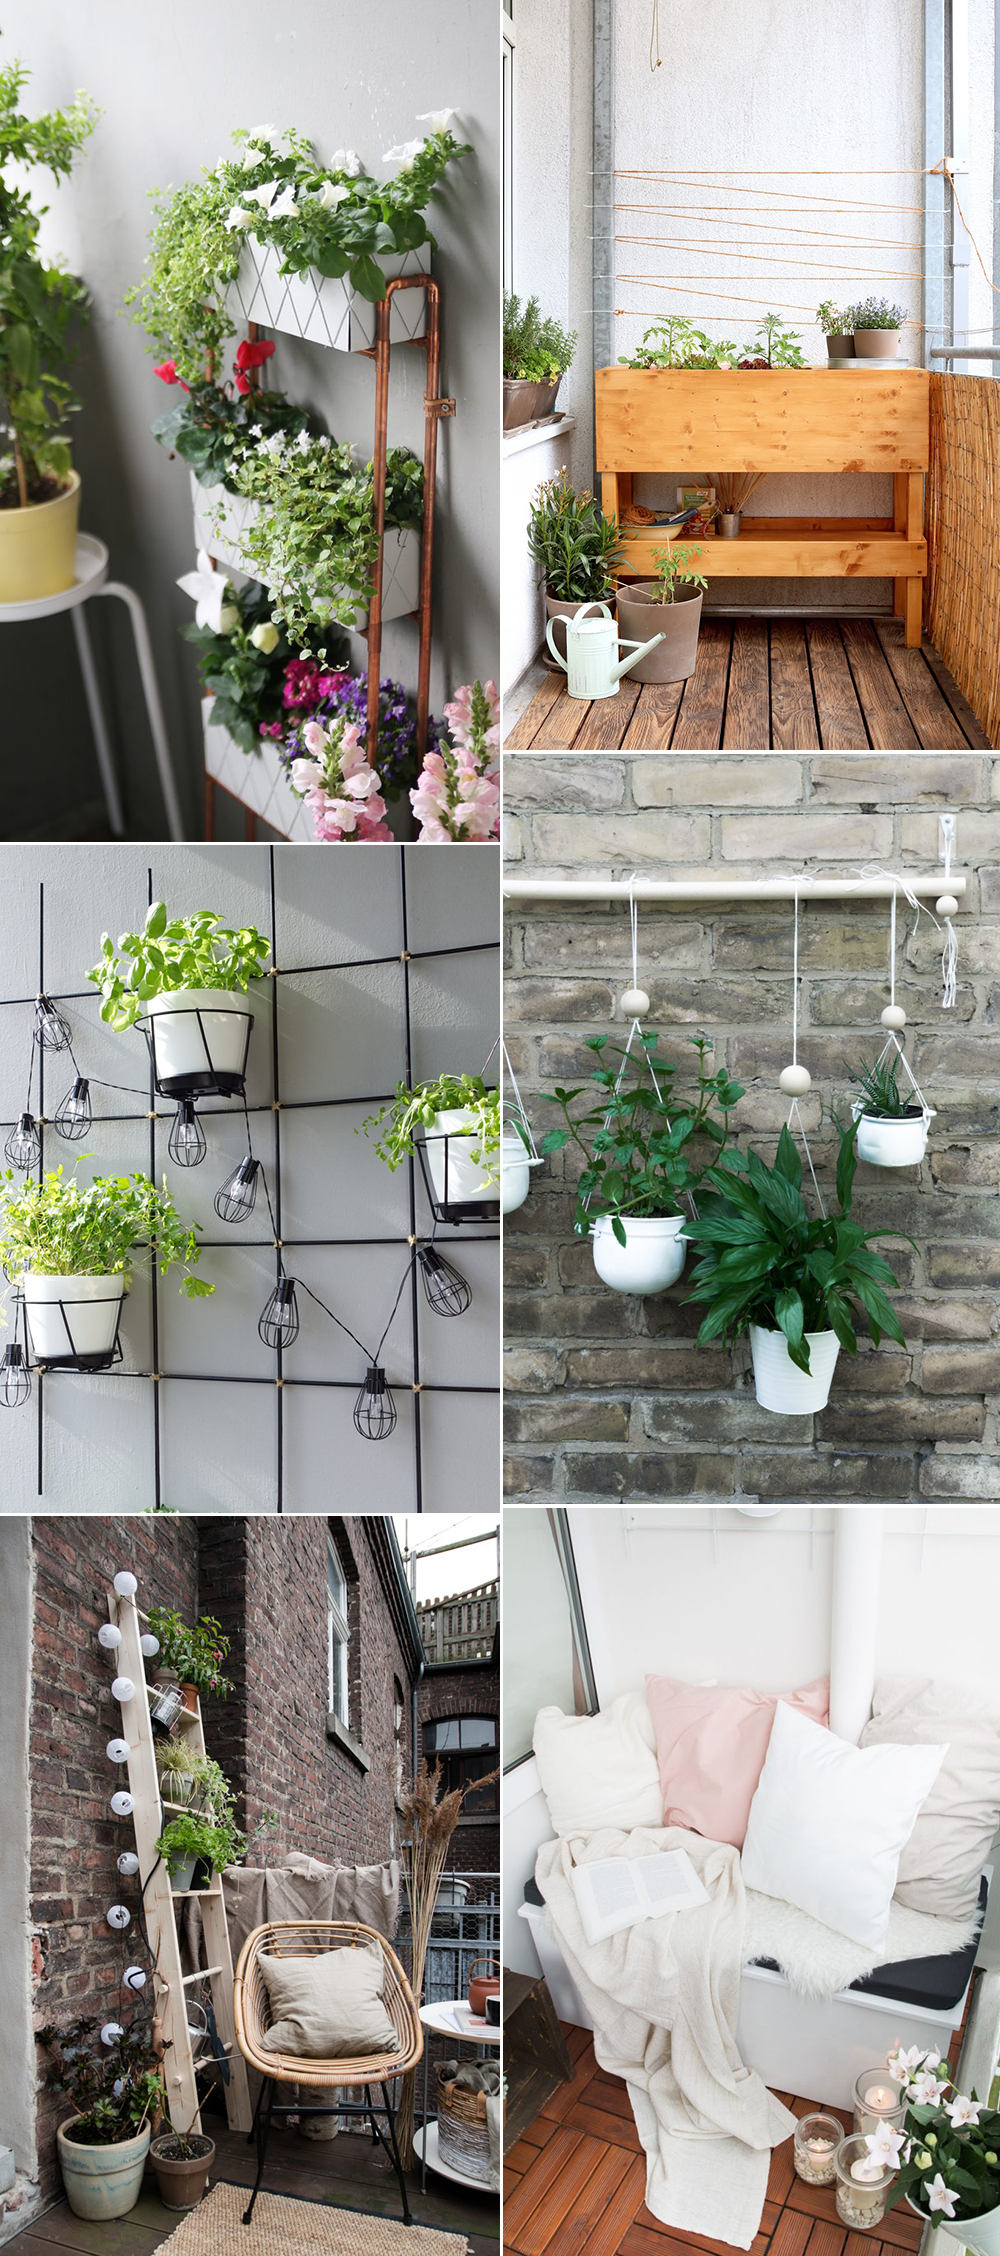 we love inspiration: diy-ideen für den balkongarten - we love handmade